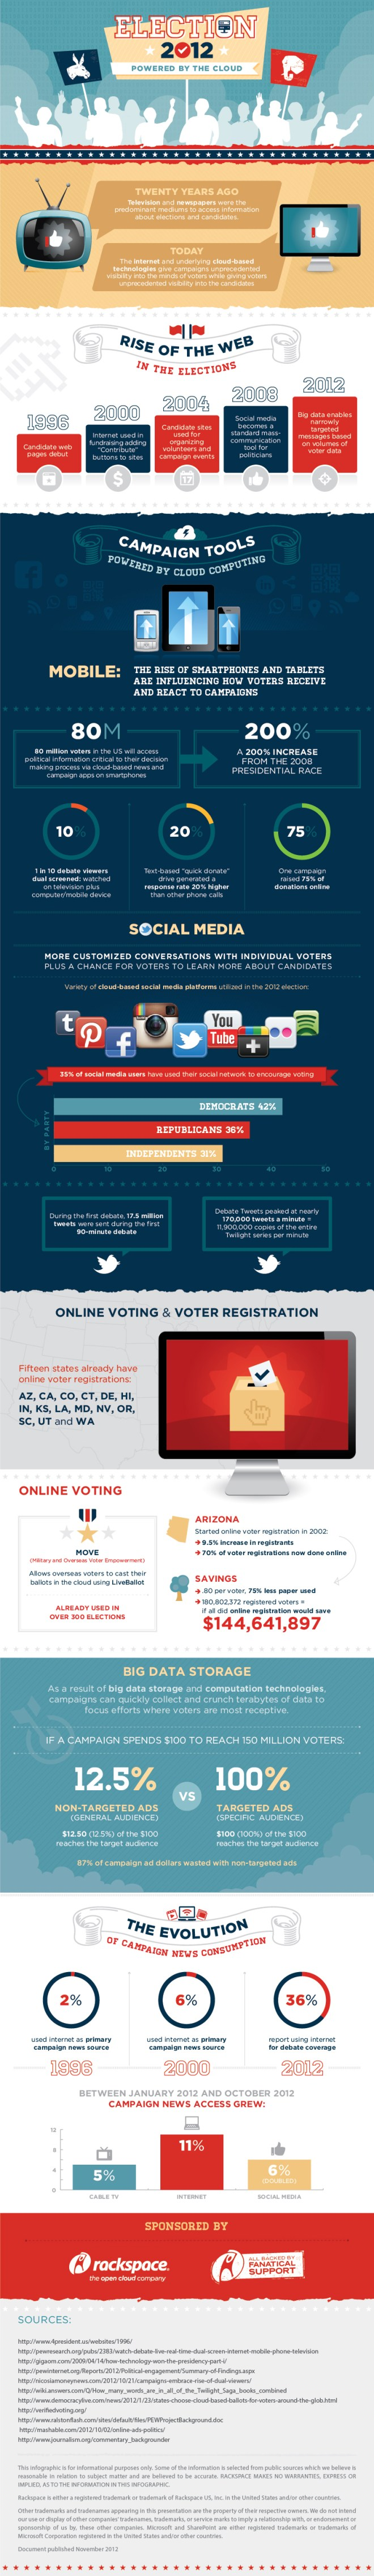 Rackspace® — Election 2012: Powered By The Cloud [INFOGRAPHIC]